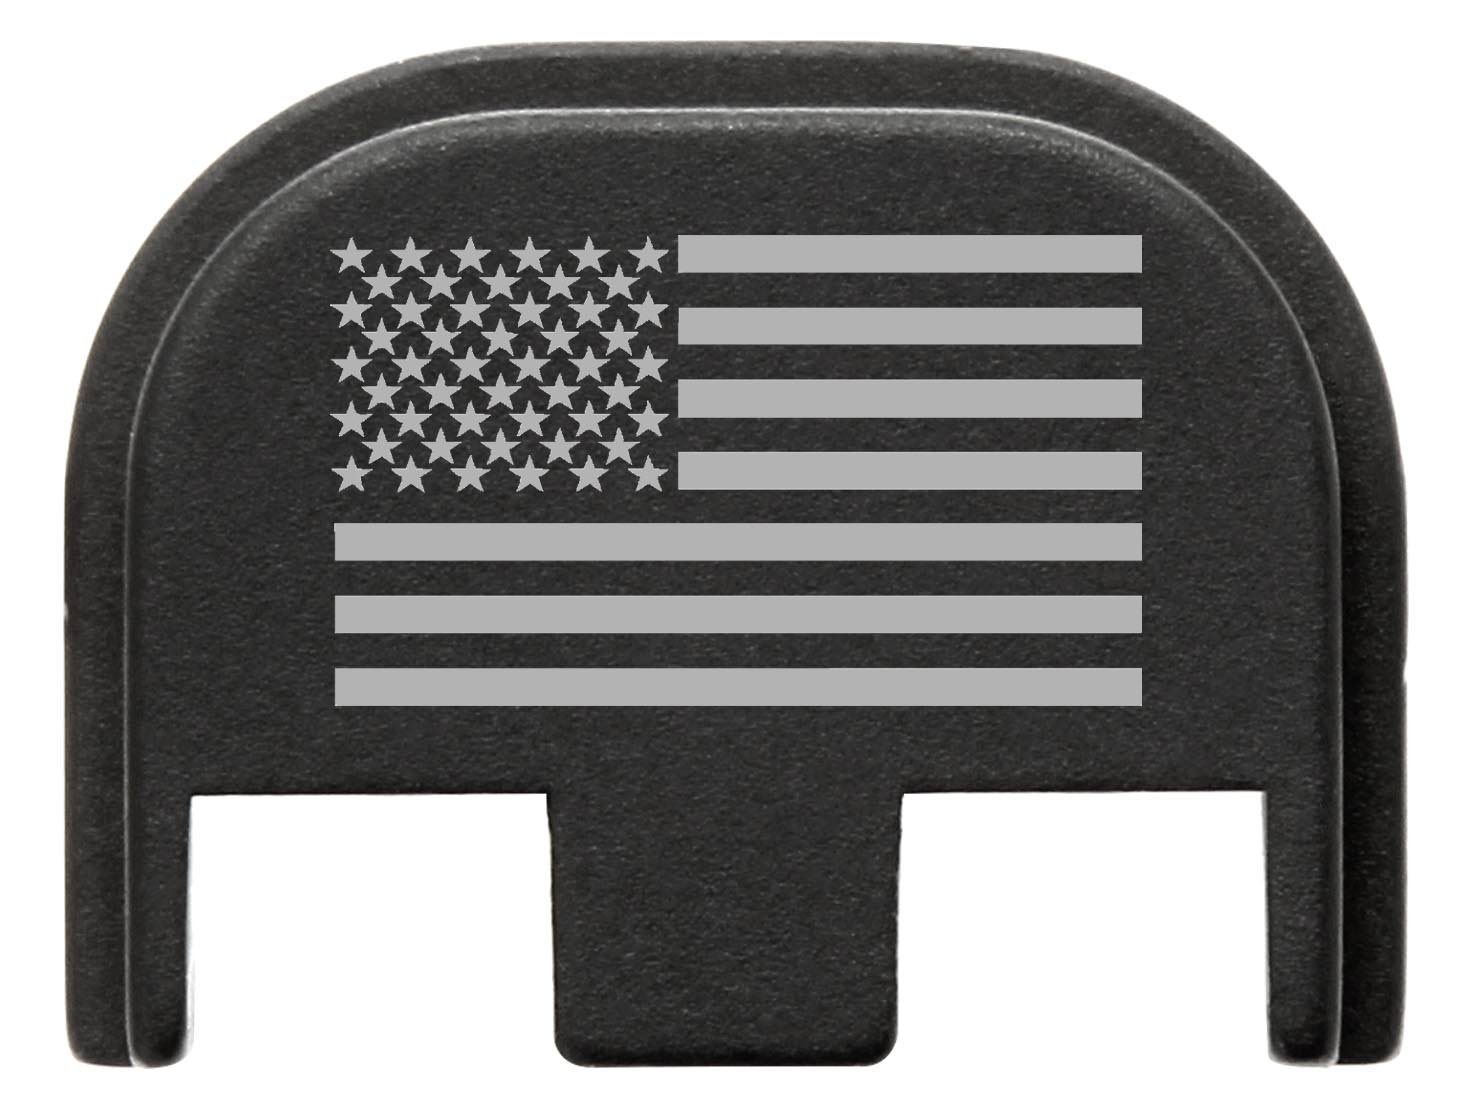 Fixxxer Gen 5 Rear Cover Plate Glock (American Flag design) Fits Most Models (Not G42, G43) Fits Gen 5 Only